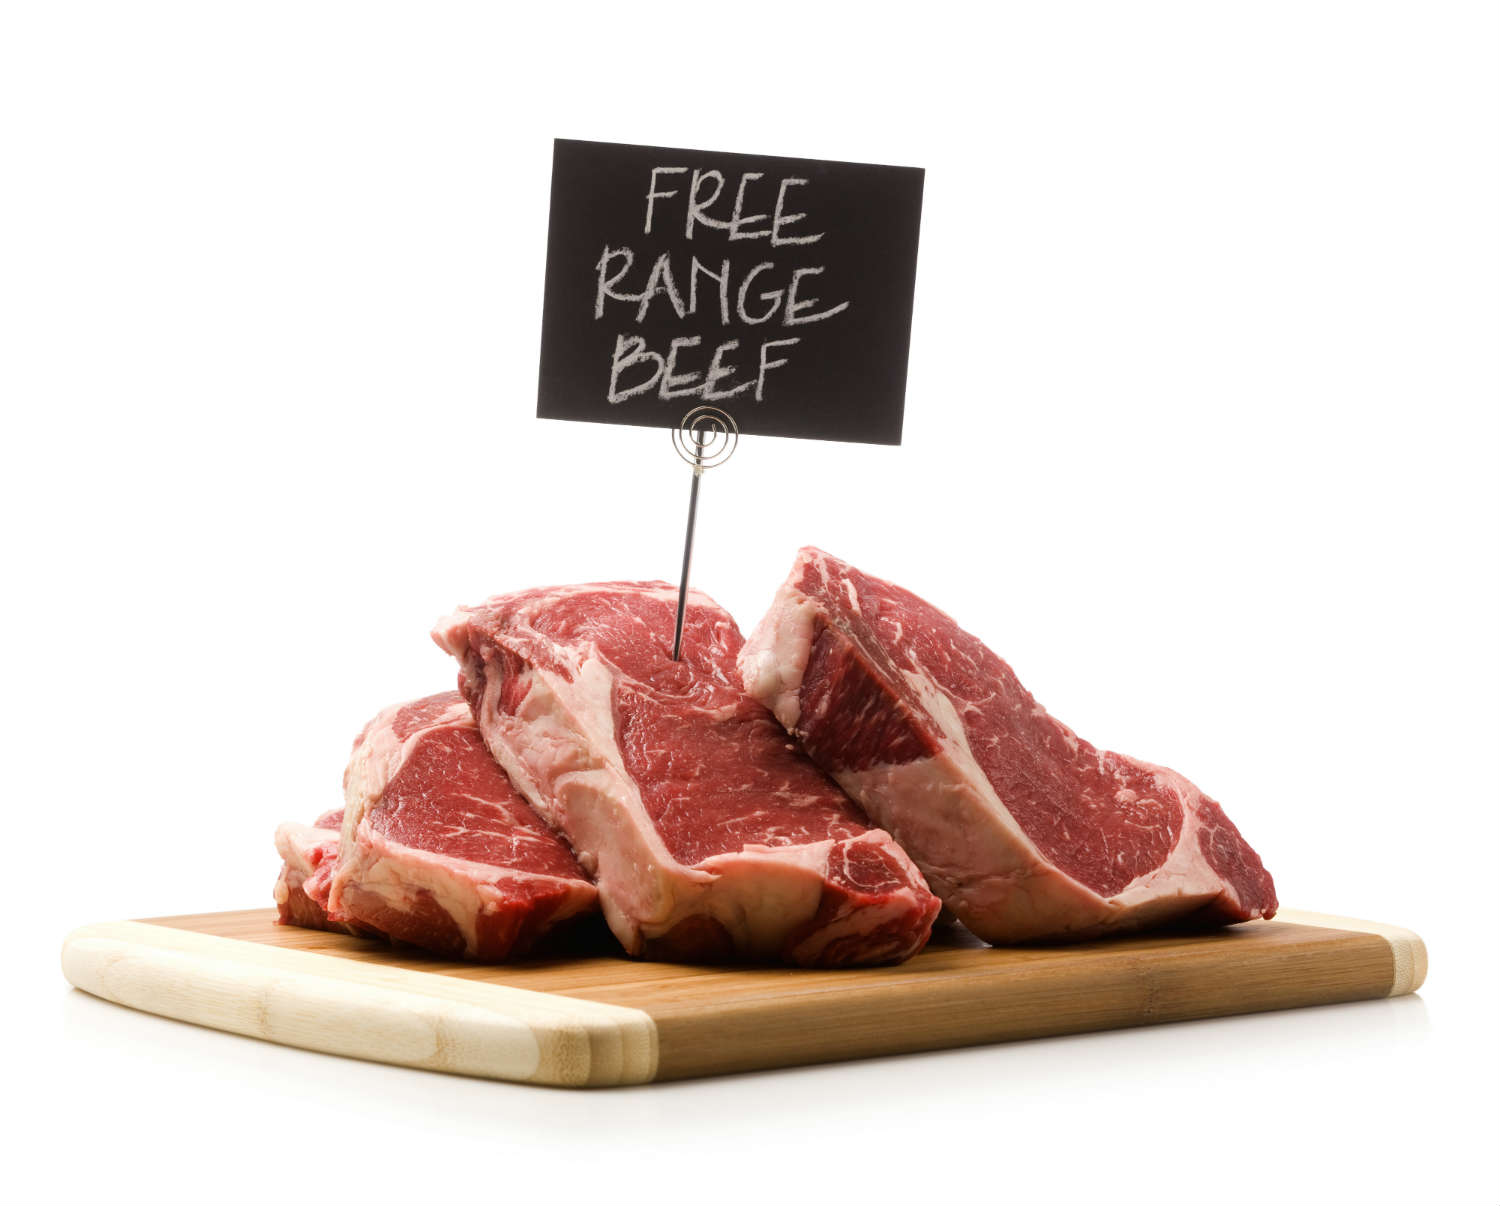 USDA failed to verify some label claims on store-bought meat